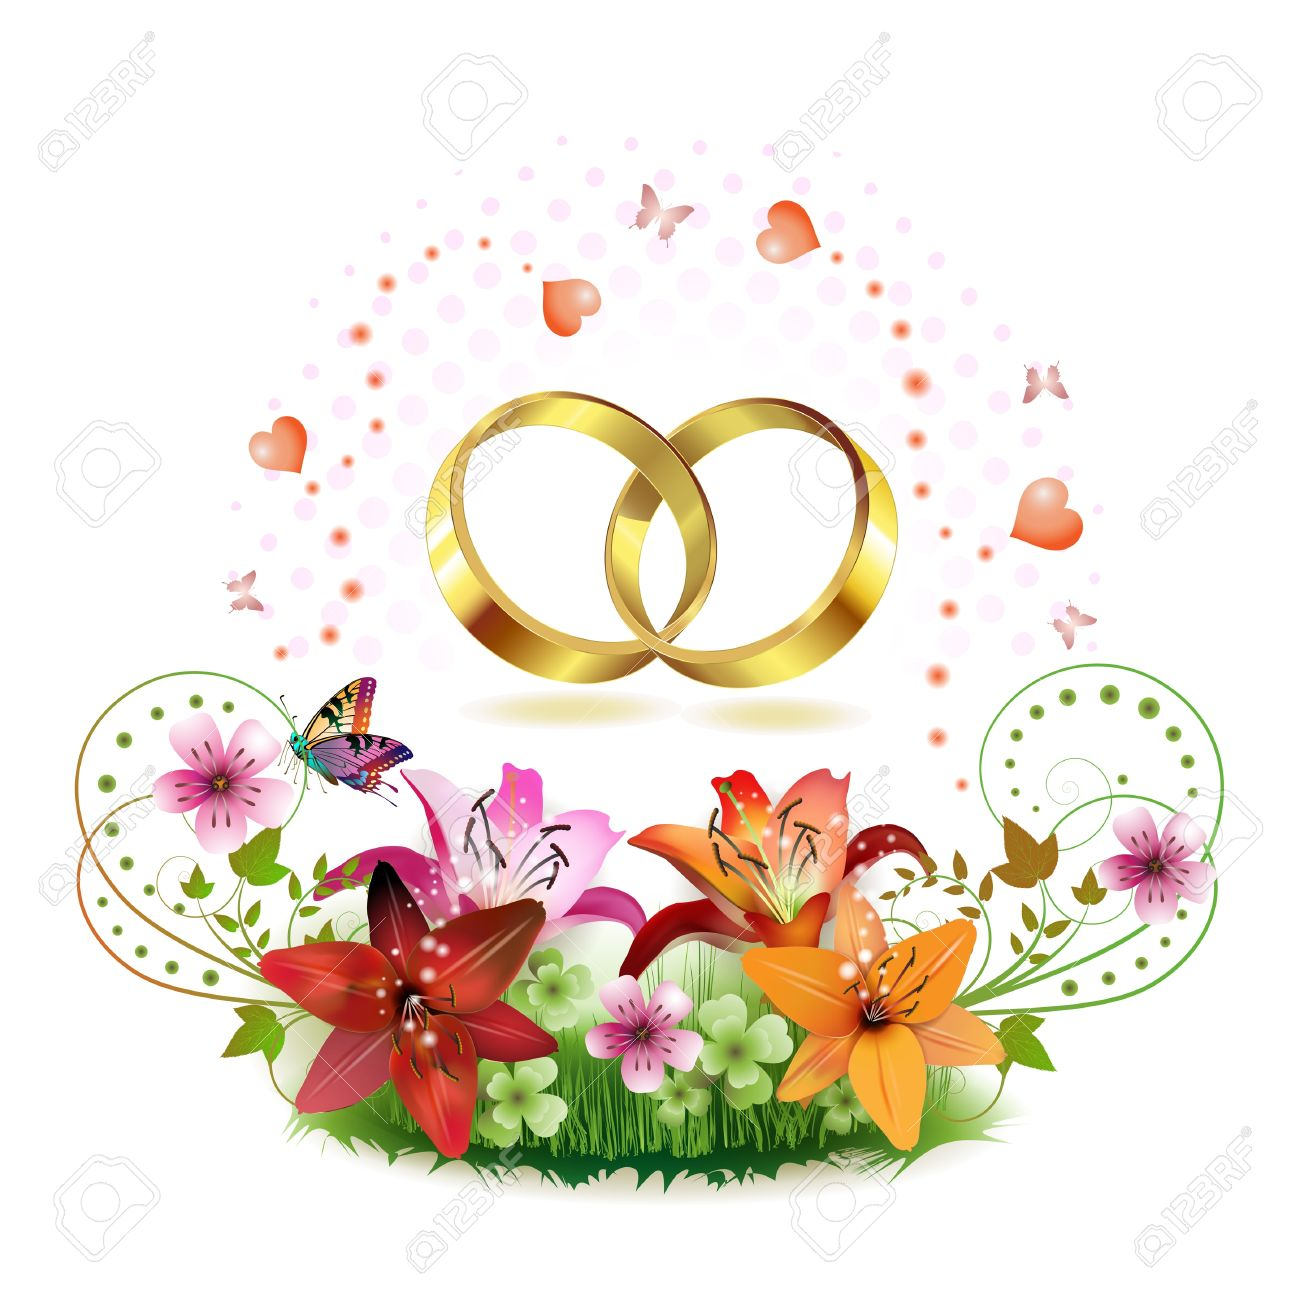 flower rings clipart 20 free cliparts  download images on